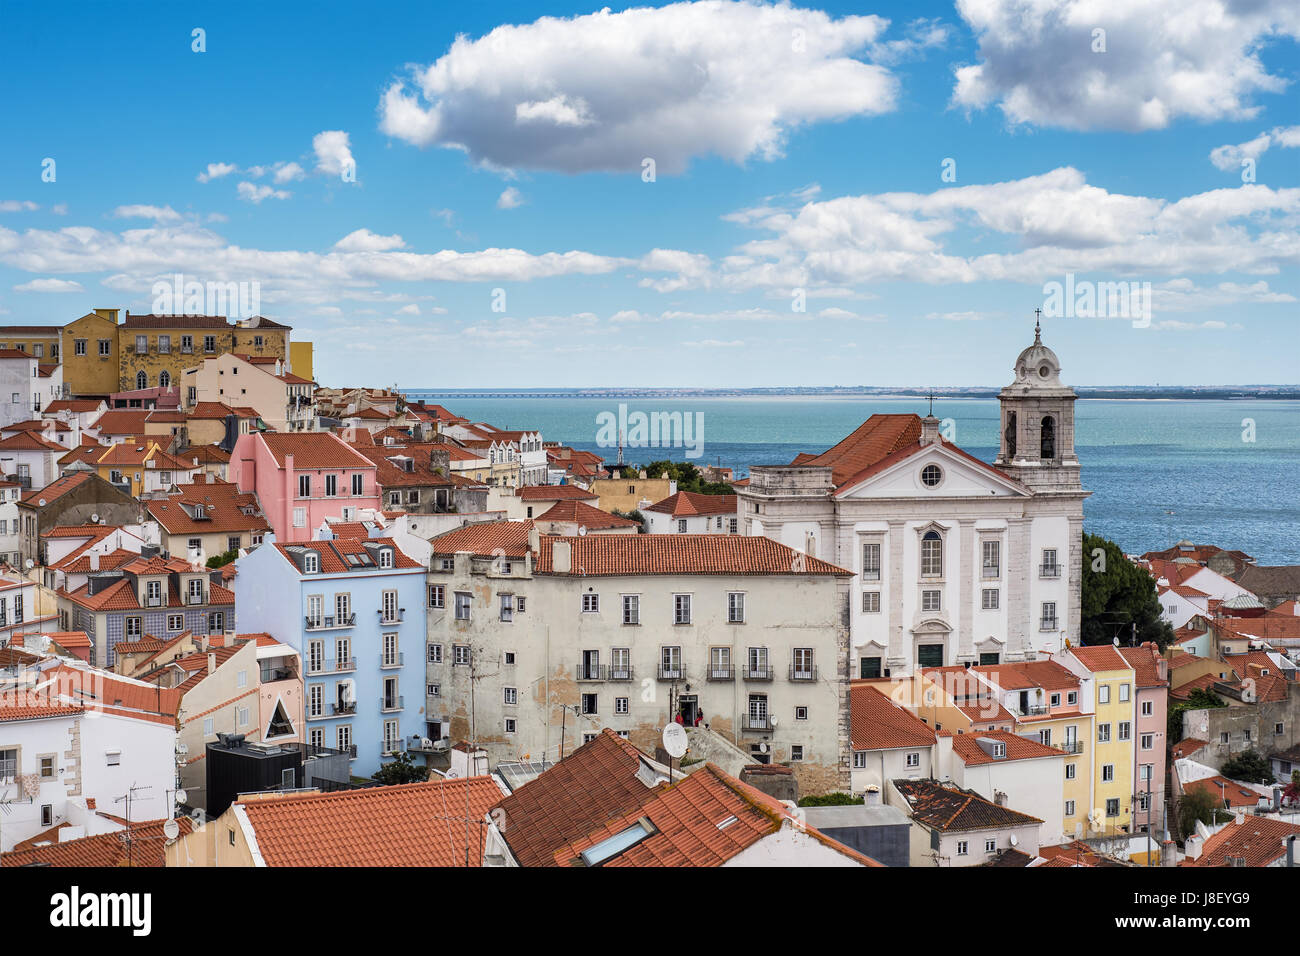 Aerial view of Lisbon city and Tagus River with red roofs and landmarks - Stock Image